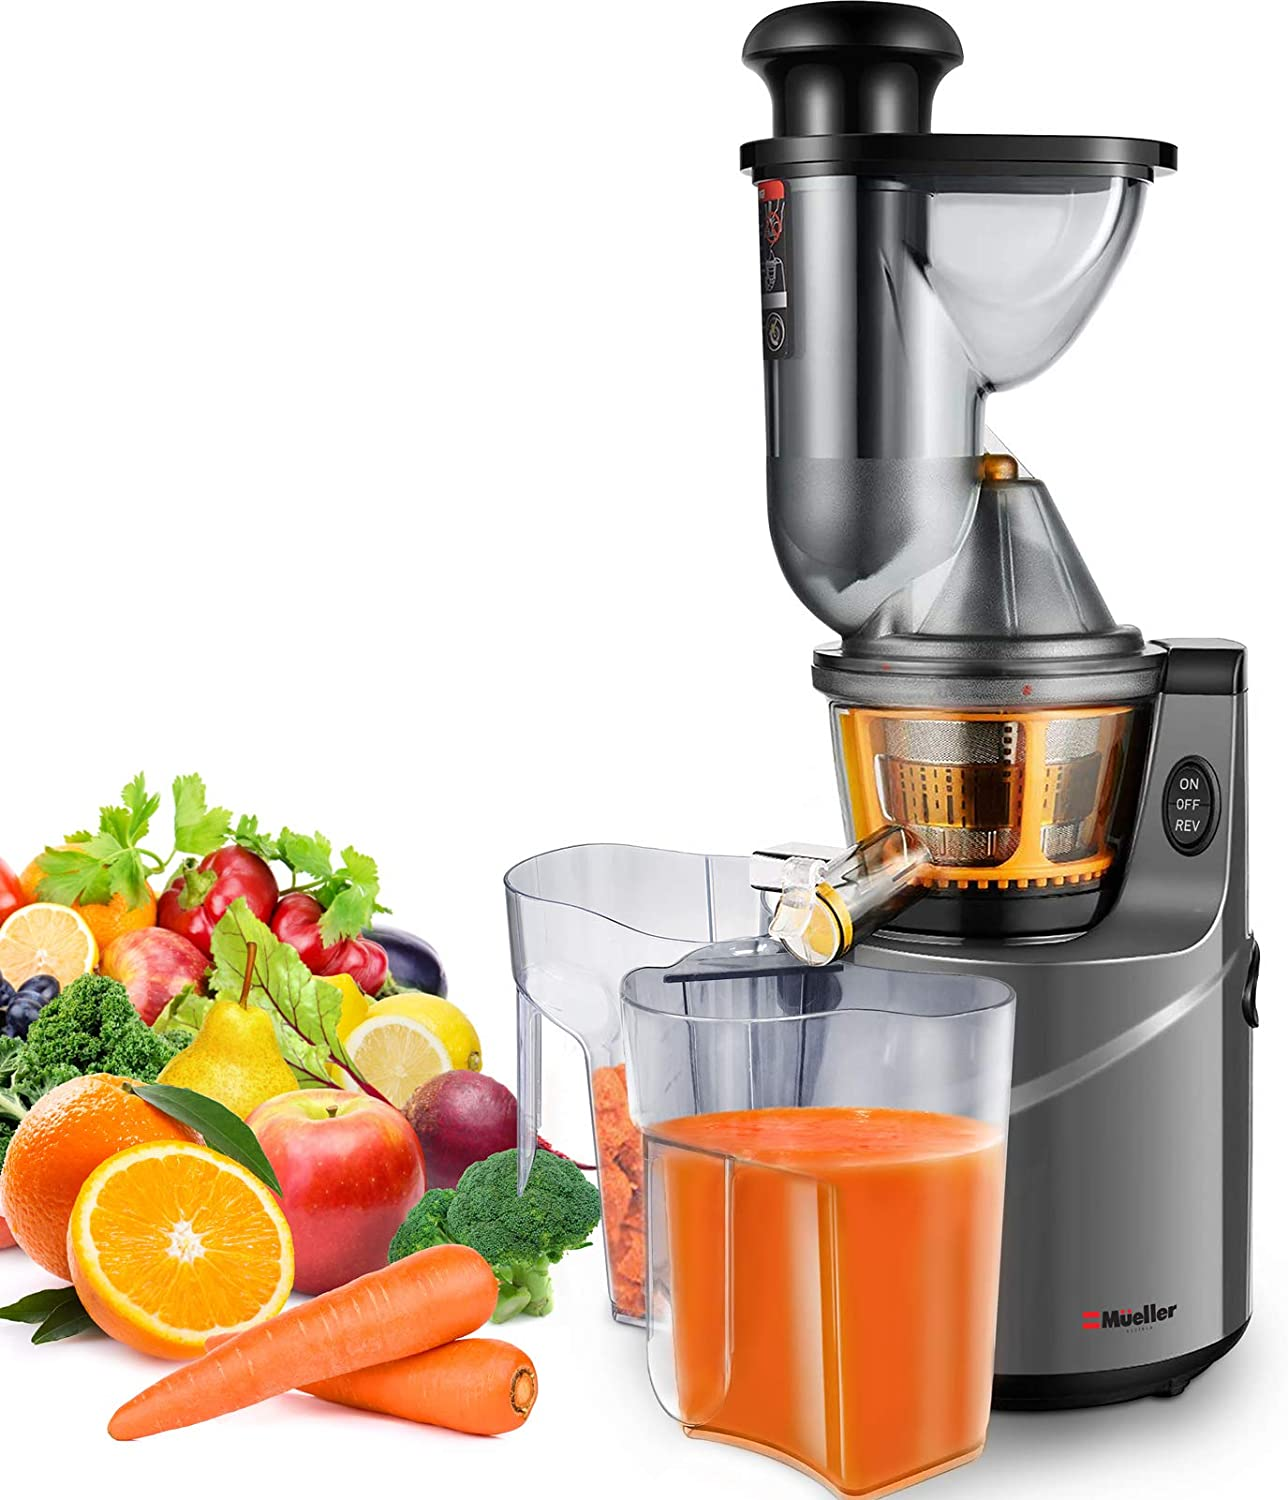 71rtNvIJCIL. AC SL1500 The Best Masticating Juicer 2021 - Reviews & Buyer's Guide